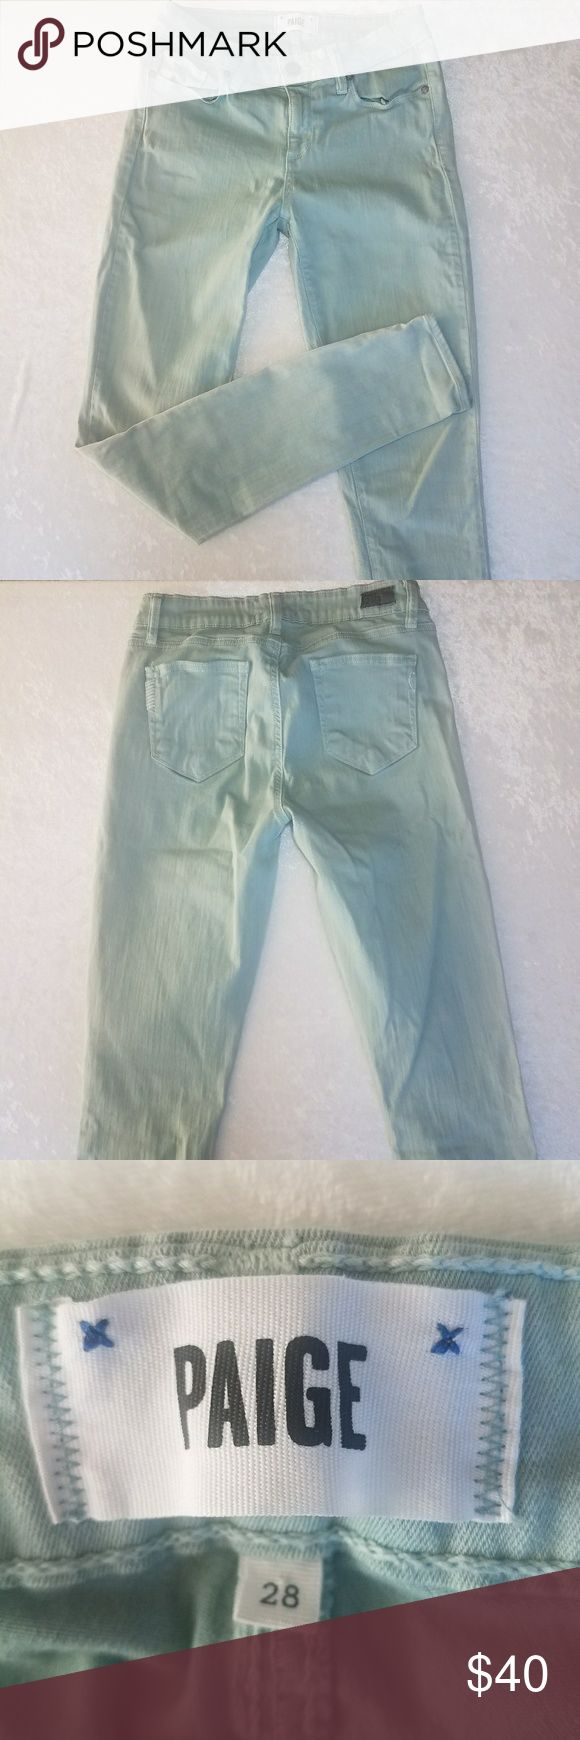 Paige mint green pants size 28 skinny jeans Flat lay waist 13.5 inches Rise 8.5 inches  Length 29.5 inches Opening 5 inches PAIGE Jeans